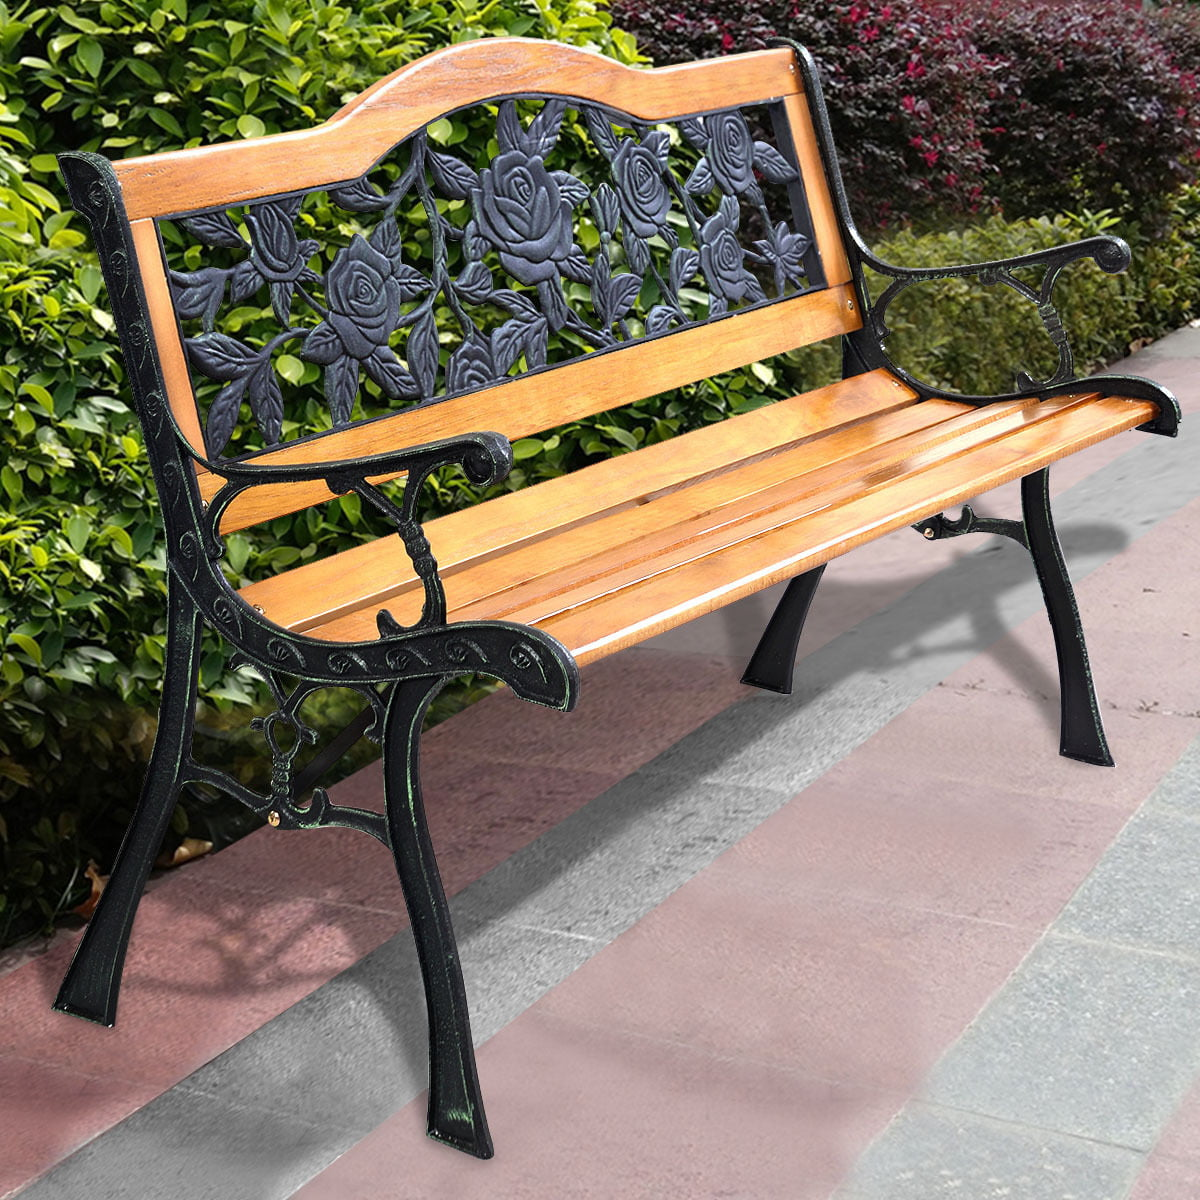 Costway Patio Park Garden Bench Porch Path Chair Furniture Cast Iron Hardwood by Outdoor Benches